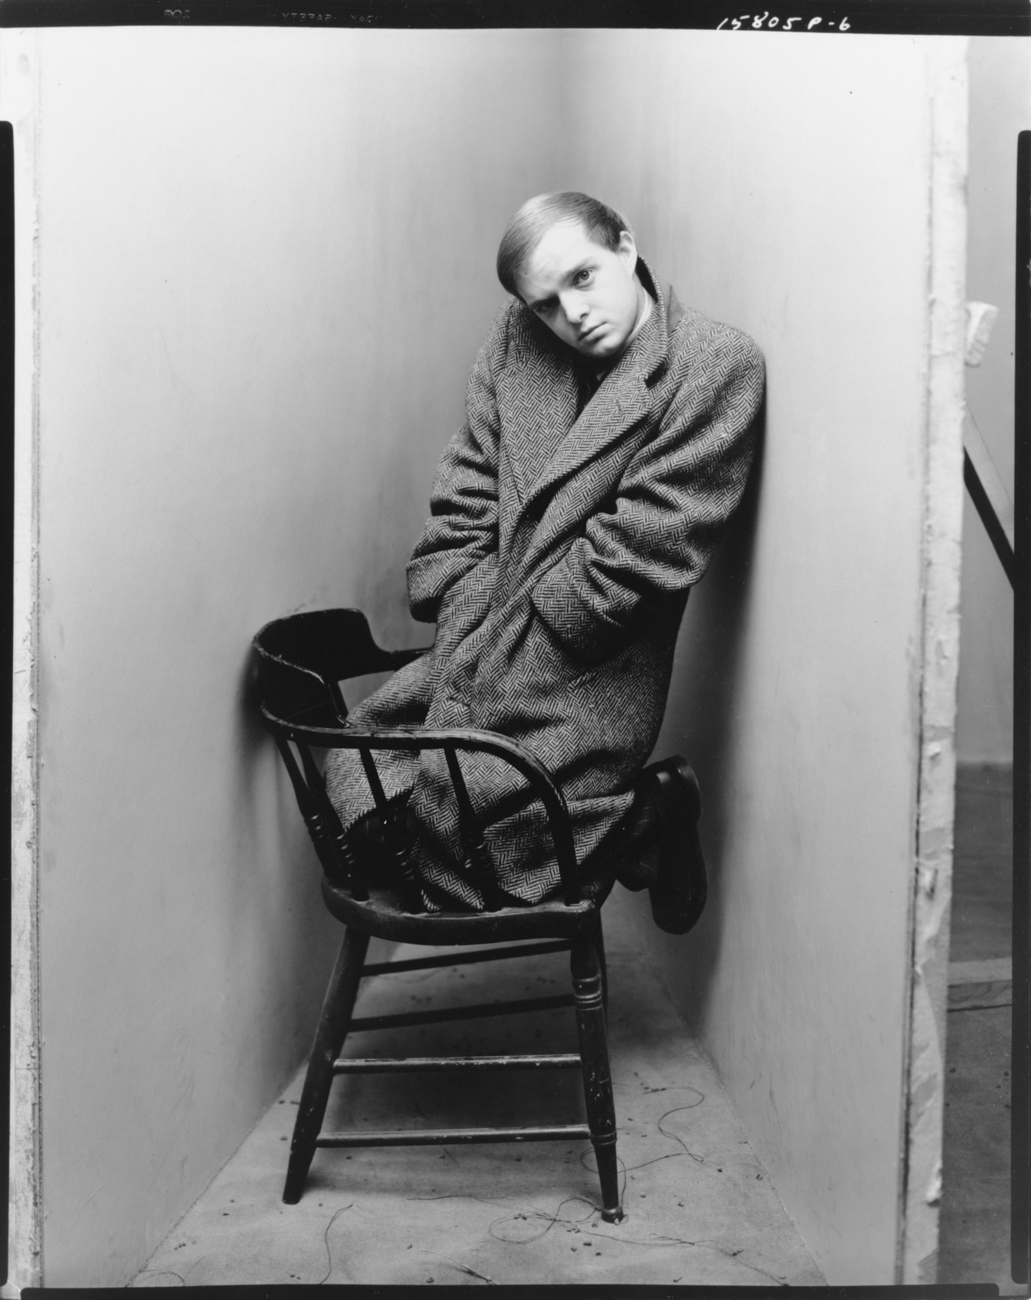 Black-and-white photograph of a man in a long coat kneeling on a wooden chair